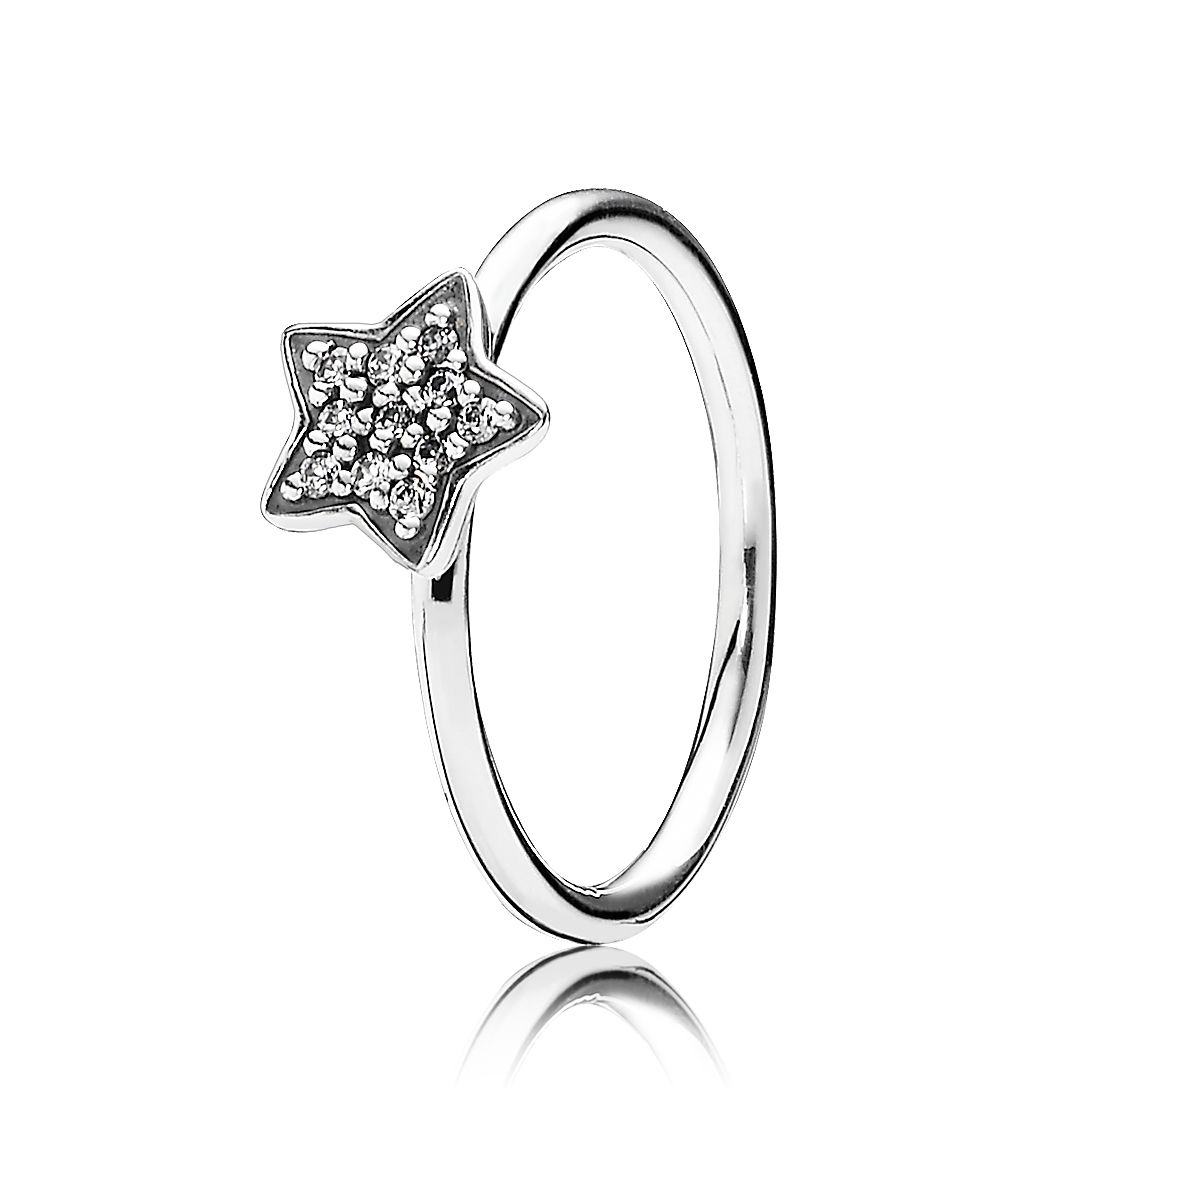 Star silver ring with cubic zirconia